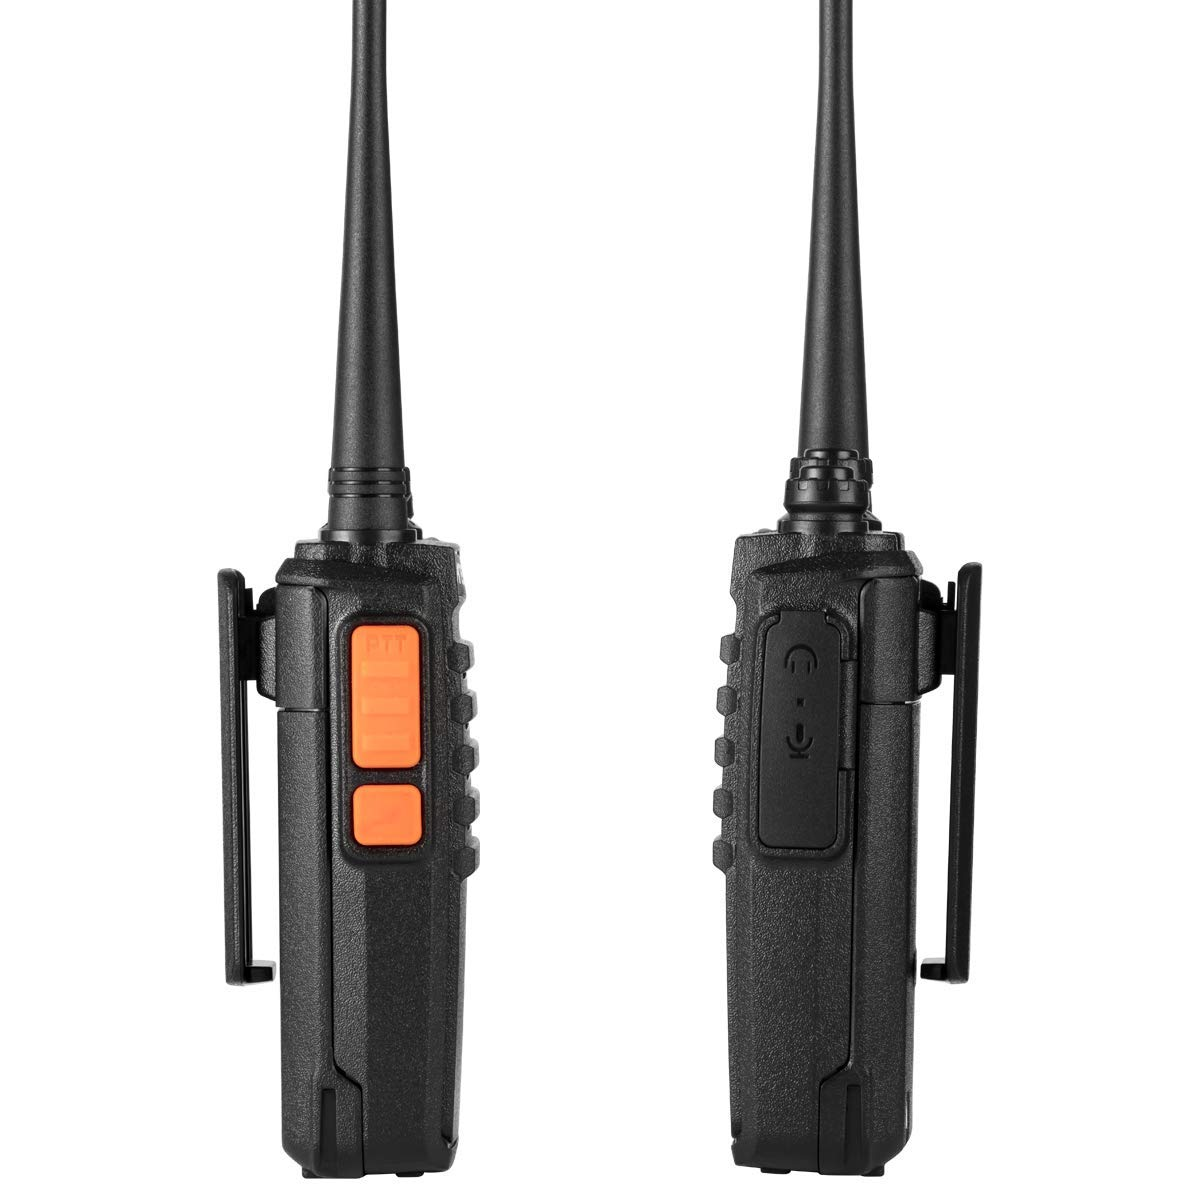 Shenzhen Xinchaohui Trading Co Ltd. 6 Pack ANSIOVON A-007 Rechargeable Long Range Two Way Radio-16 Channels-UHF 400-470Mhz-Include 2800 Mah Li-ion Battery-Professional Walkie Talkie-6W-Up to 15 Miles Long Range